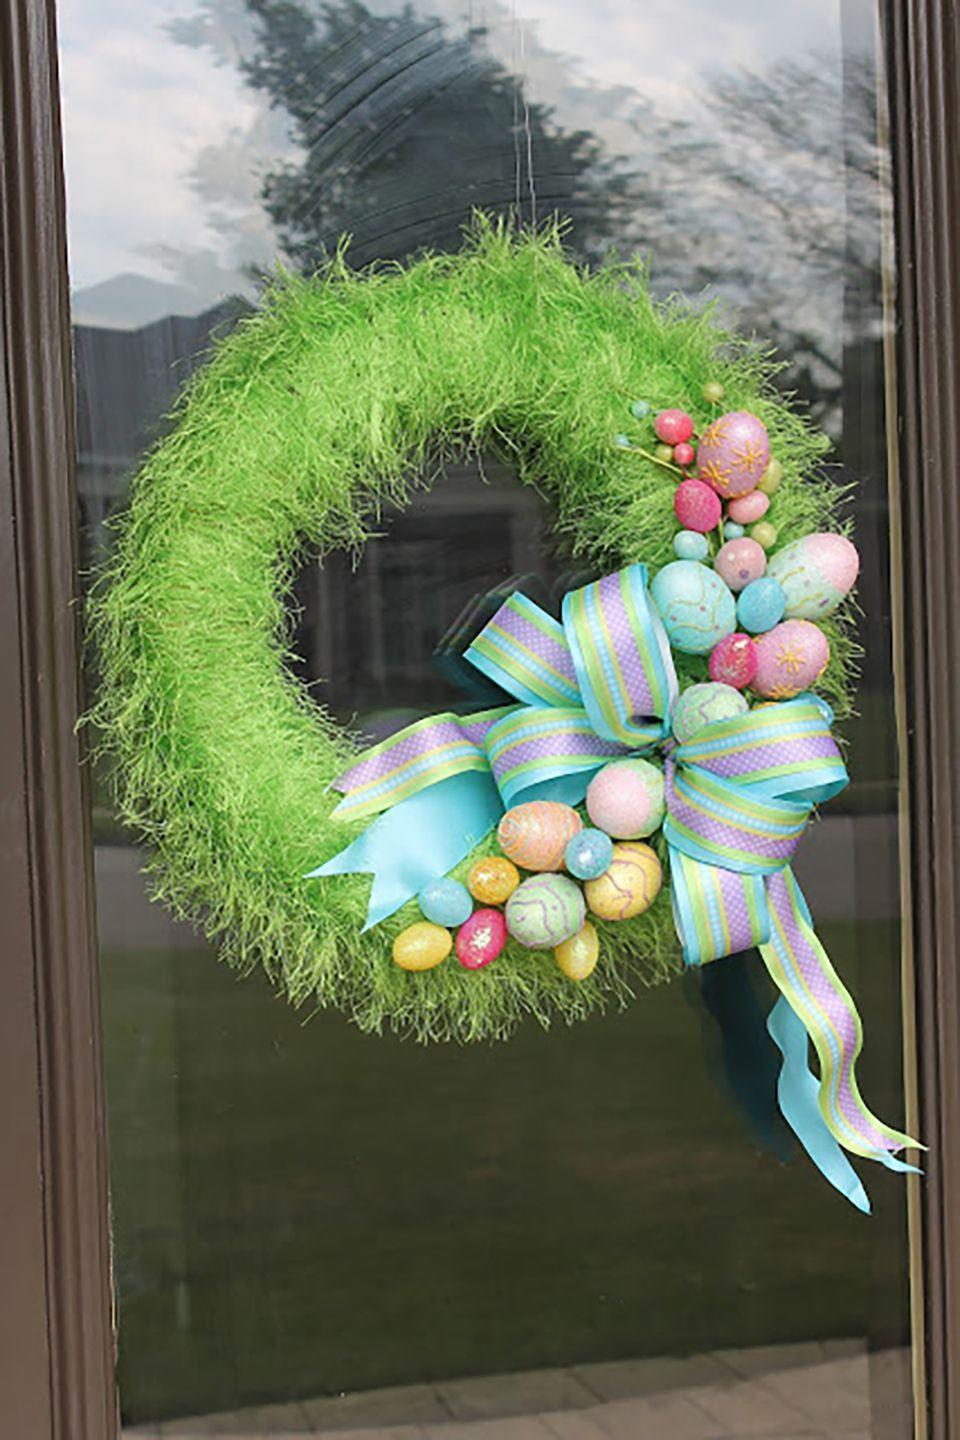 """<p>You won't be able to keep your hands off this fuzzy, colorful wreath!</p><p><strong>Get the tutorial at <a href=""""http://misskopykat.blogspot.com/2012/03/grass-wreath.html"""" rel=""""nofollow noopener"""" target=""""_blank"""" data-ylk=""""slk:Miss Kopy Kat"""" class=""""link rapid-noclick-resp"""">Miss Kopy Kat</a>. </strong></p><p><strong><a class=""""link rapid-noclick-resp"""" href=""""https://www.amazon.com/s?k=easter+grass&i=garden&ref=nb_sb_noss_2&tag=syn-yahoo-20&ascsubtag=%5Bartid%7C10050.g.4088%5Bsrc%7Cyahoo-us"""" rel=""""nofollow noopener"""" target=""""_blank"""" data-ylk=""""slk:SHOP EASTER GRASS"""">SHOP EASTER GRASS</a></strong></p>"""